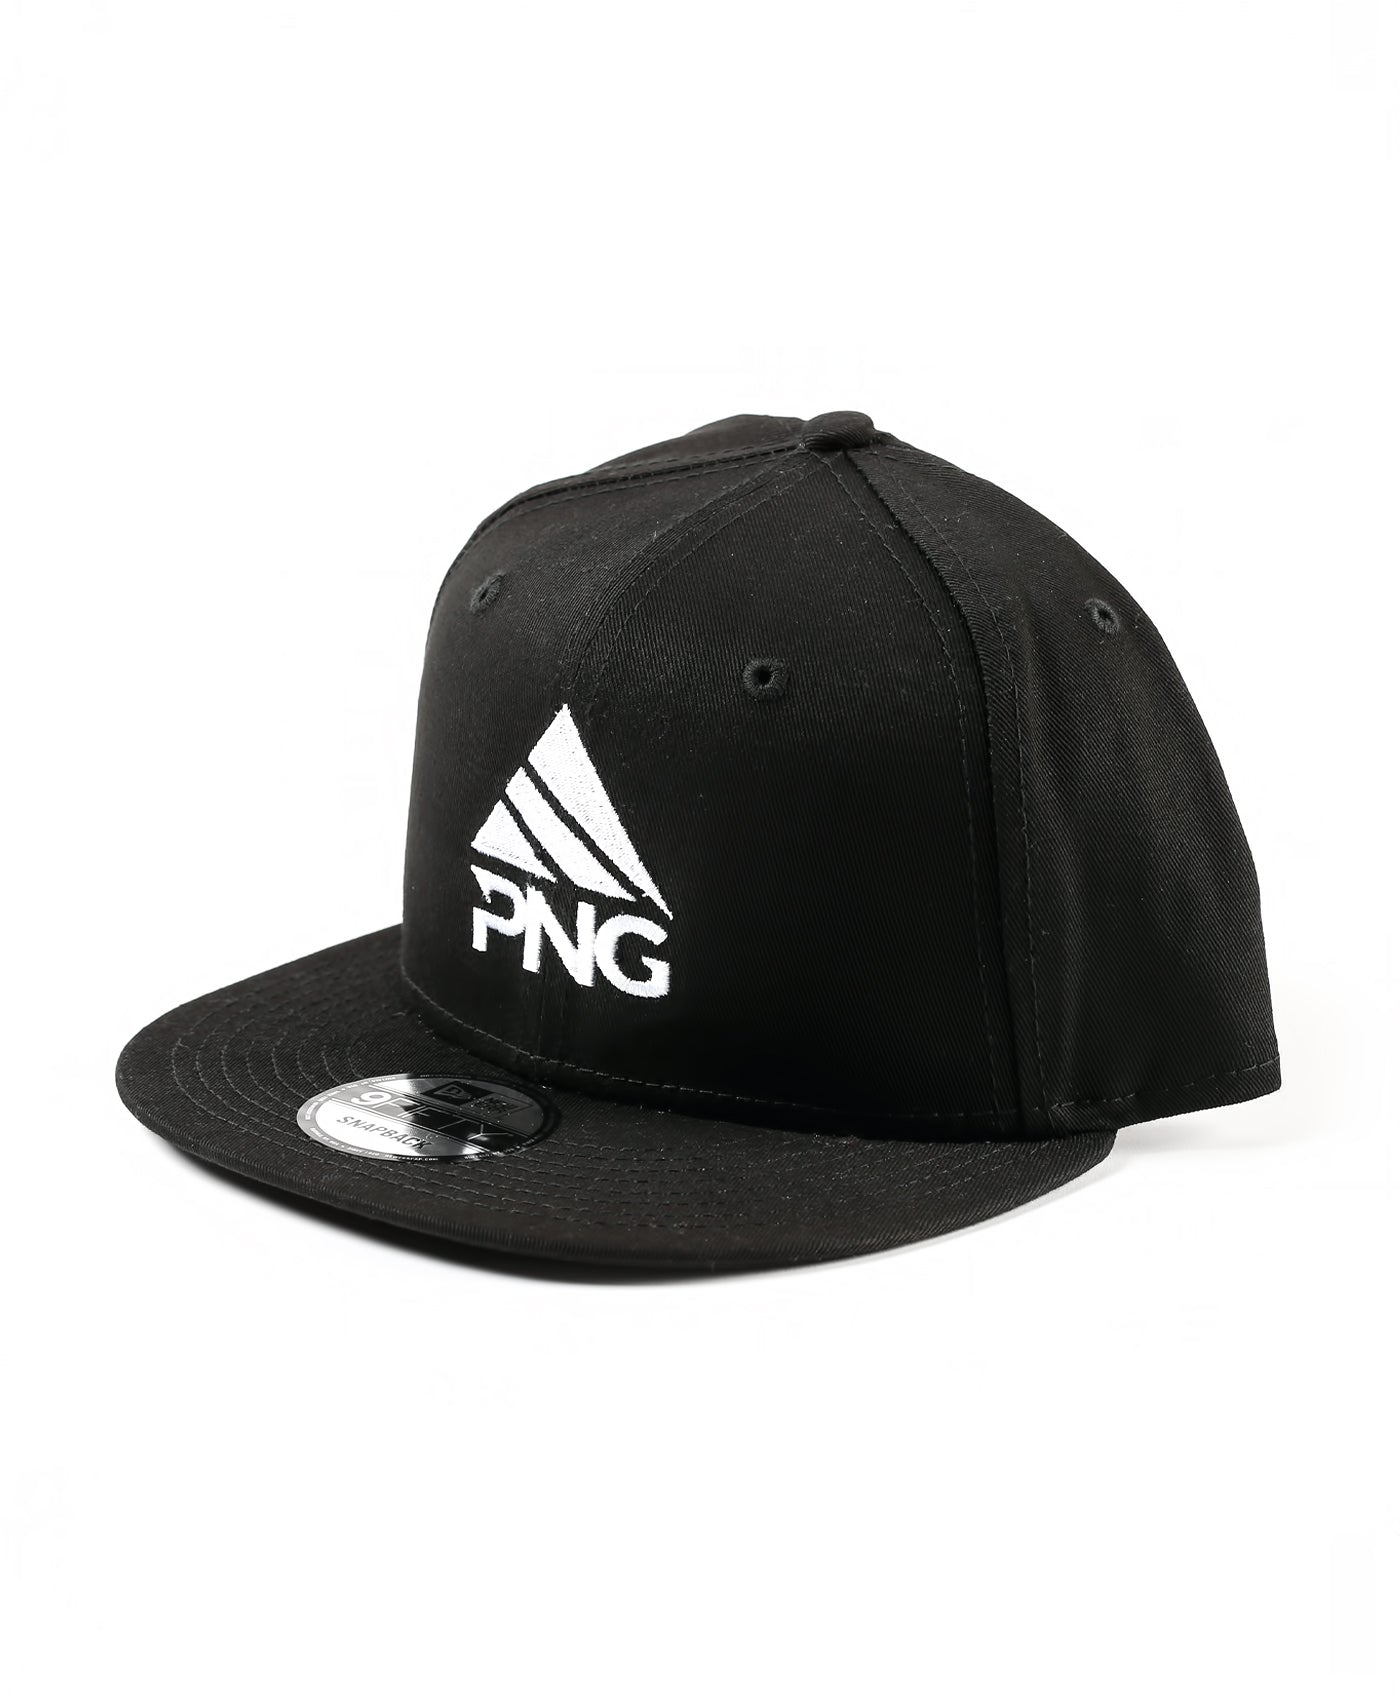 PNG Snapback Hat - Pinnacle Nutrition Group